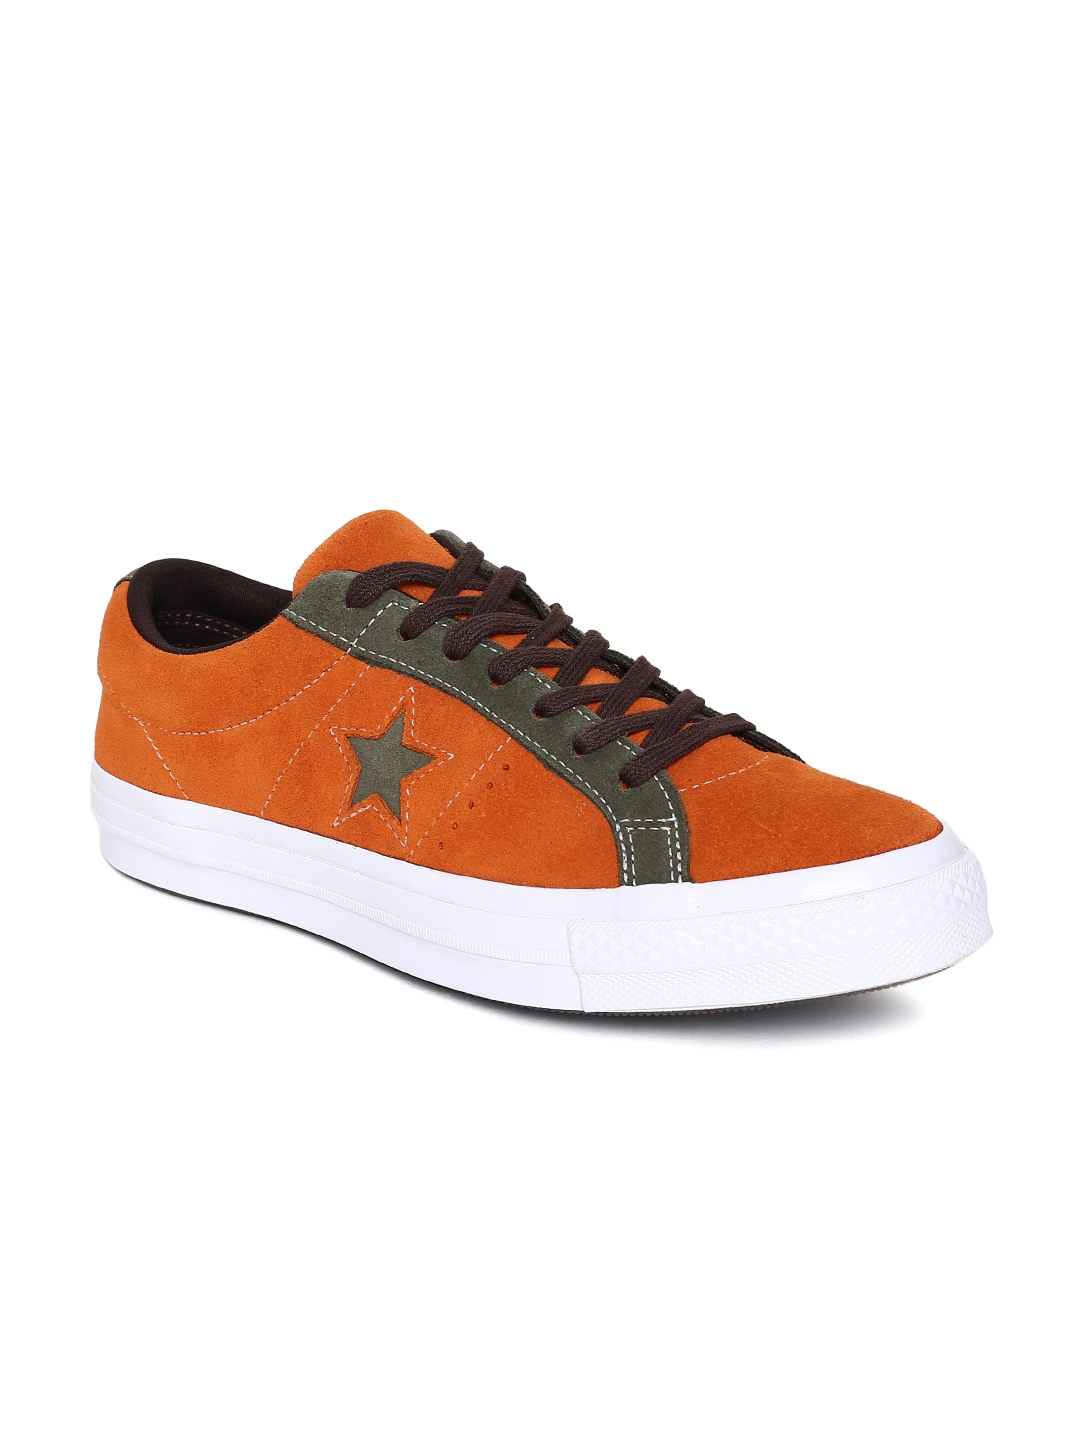 e91db2a255d514 Men Orange Sneaker Shoes - Buy Men Orange Sneaker Shoes online in India